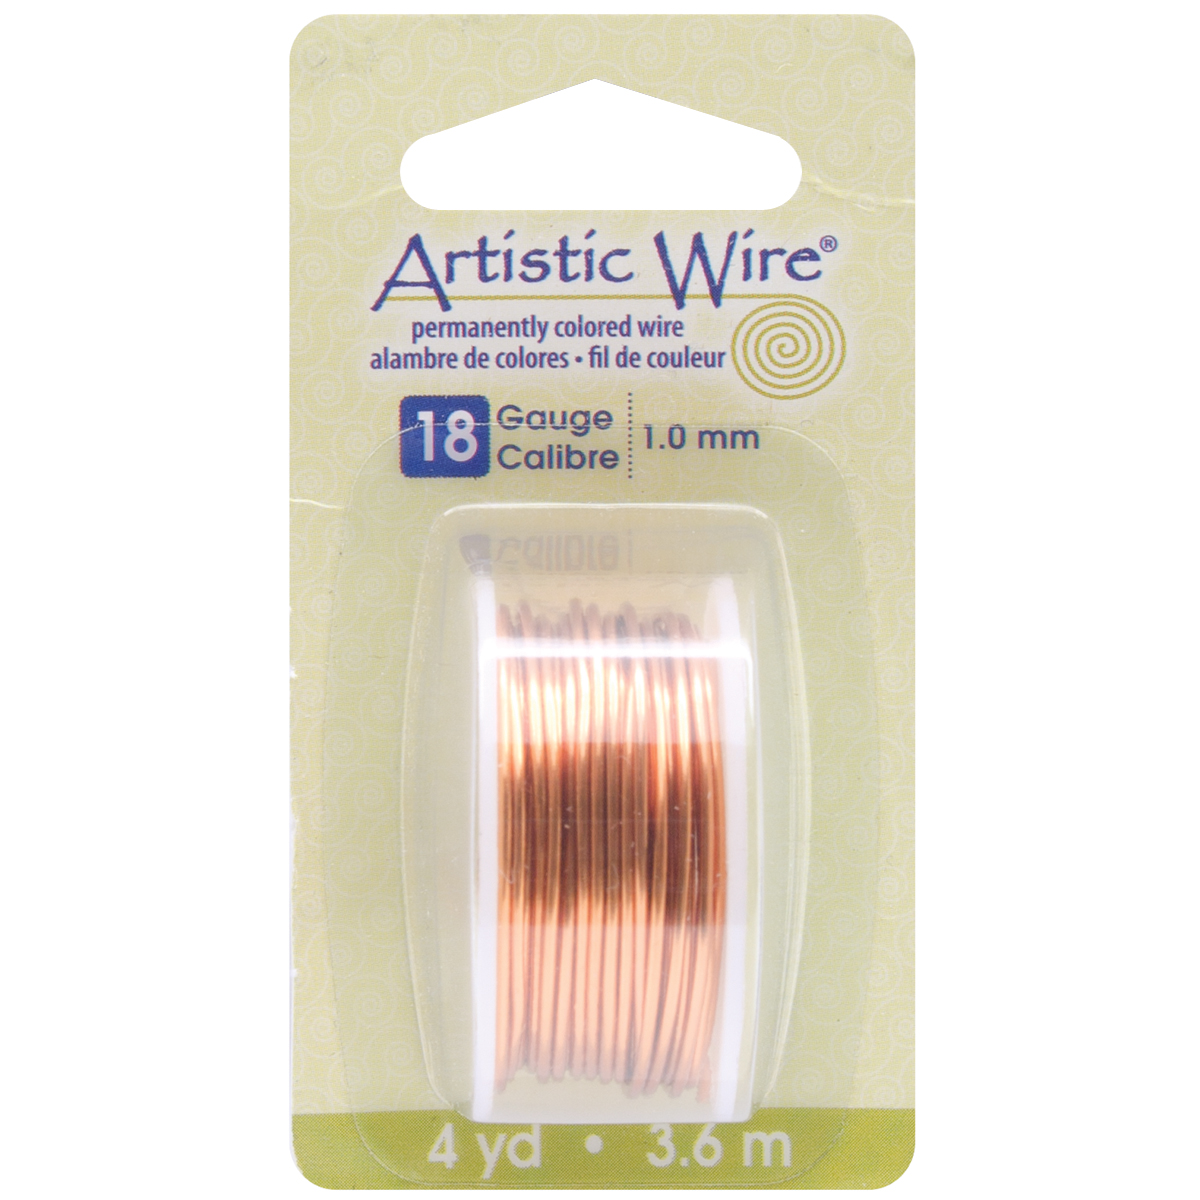 Artistic Wire-Natural - 18 Gauge, 4yd